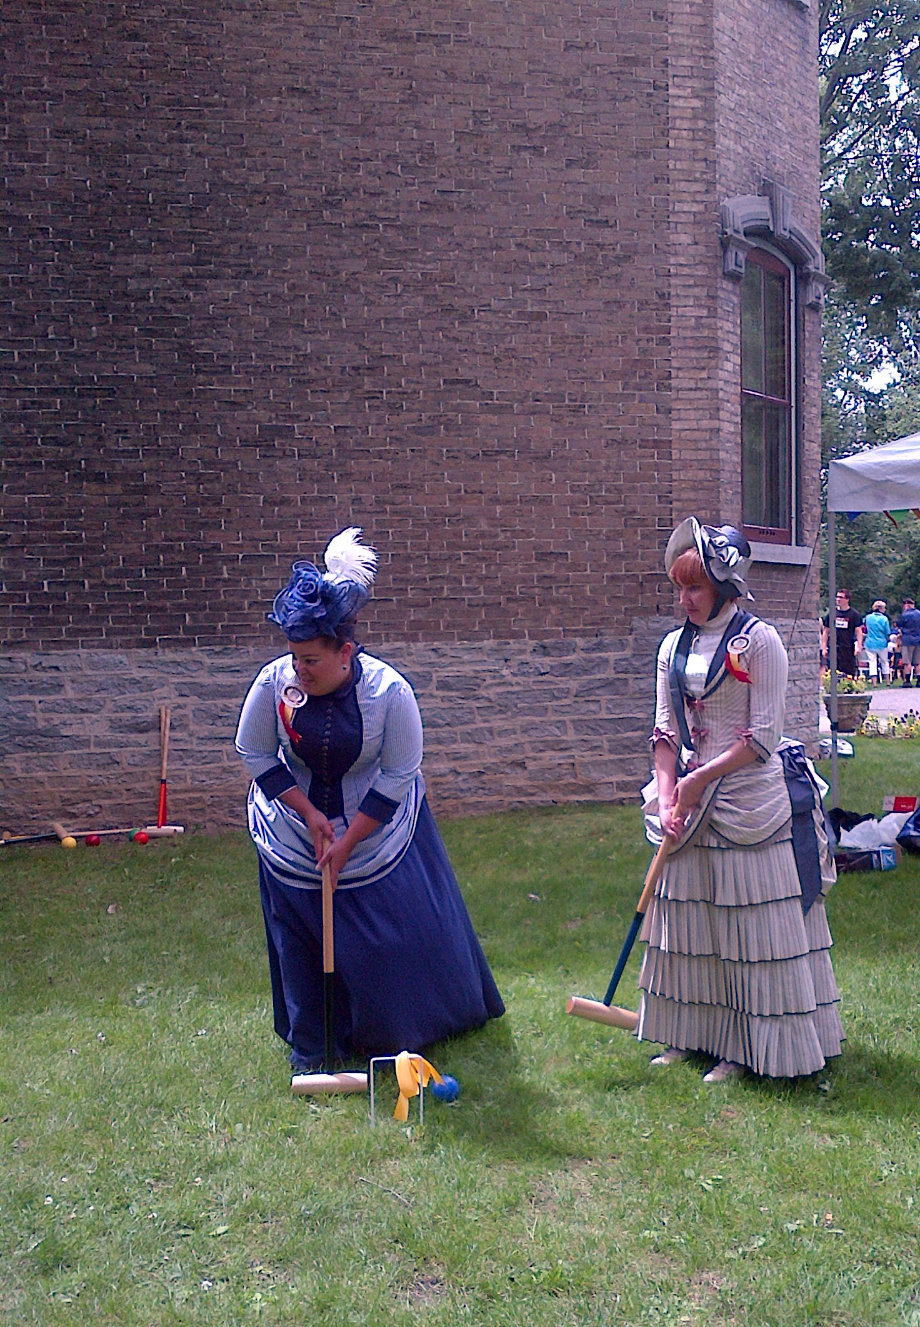 Members of the Kingston Heritage Ambassadors play croquet on the lawn at Glanmore.